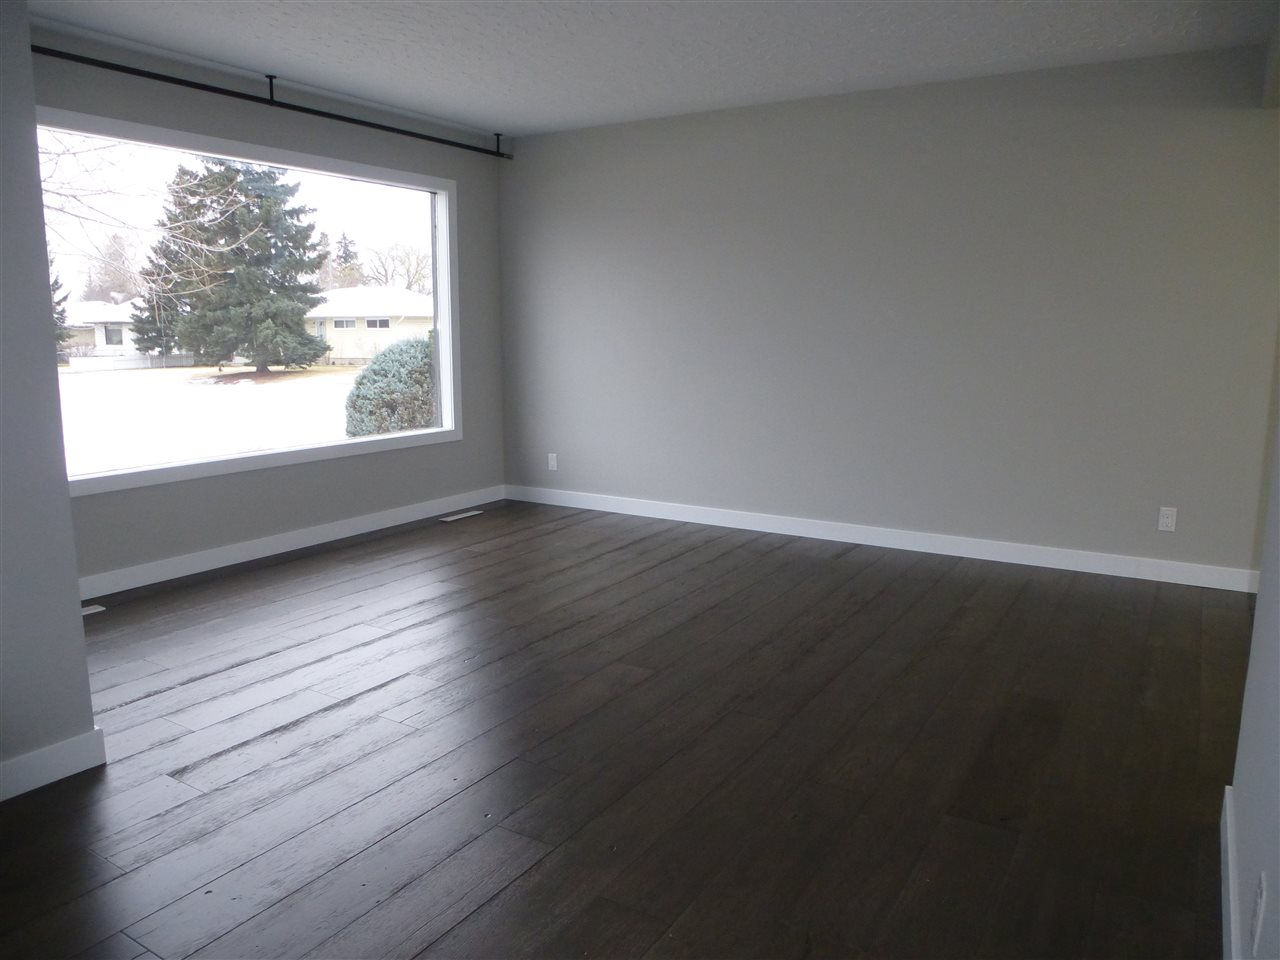 Photo 4: 8810 159A ST NW in Edmonton: Zone 22 House for sale : MLS(r) # E4044366